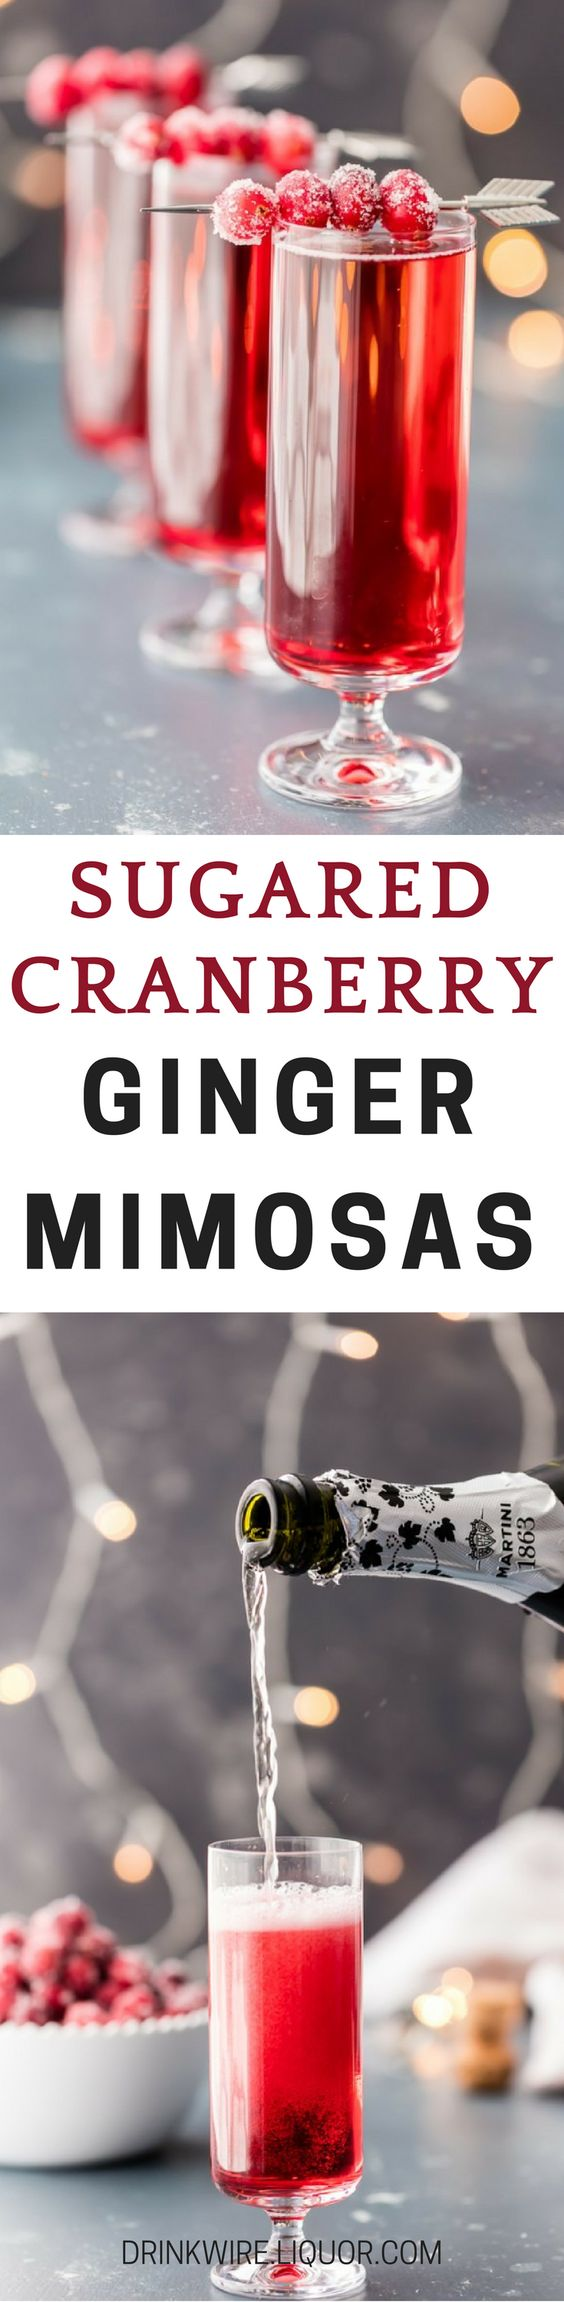 Sugared Cranberry Ginger Mimosas, ONLY THREE INGREDIENTS! Easy holiday cocktail recipe perfect for #Thanksgiving, #Christmas, and Valentine's Day! Because #Mimosas never go out of season!: